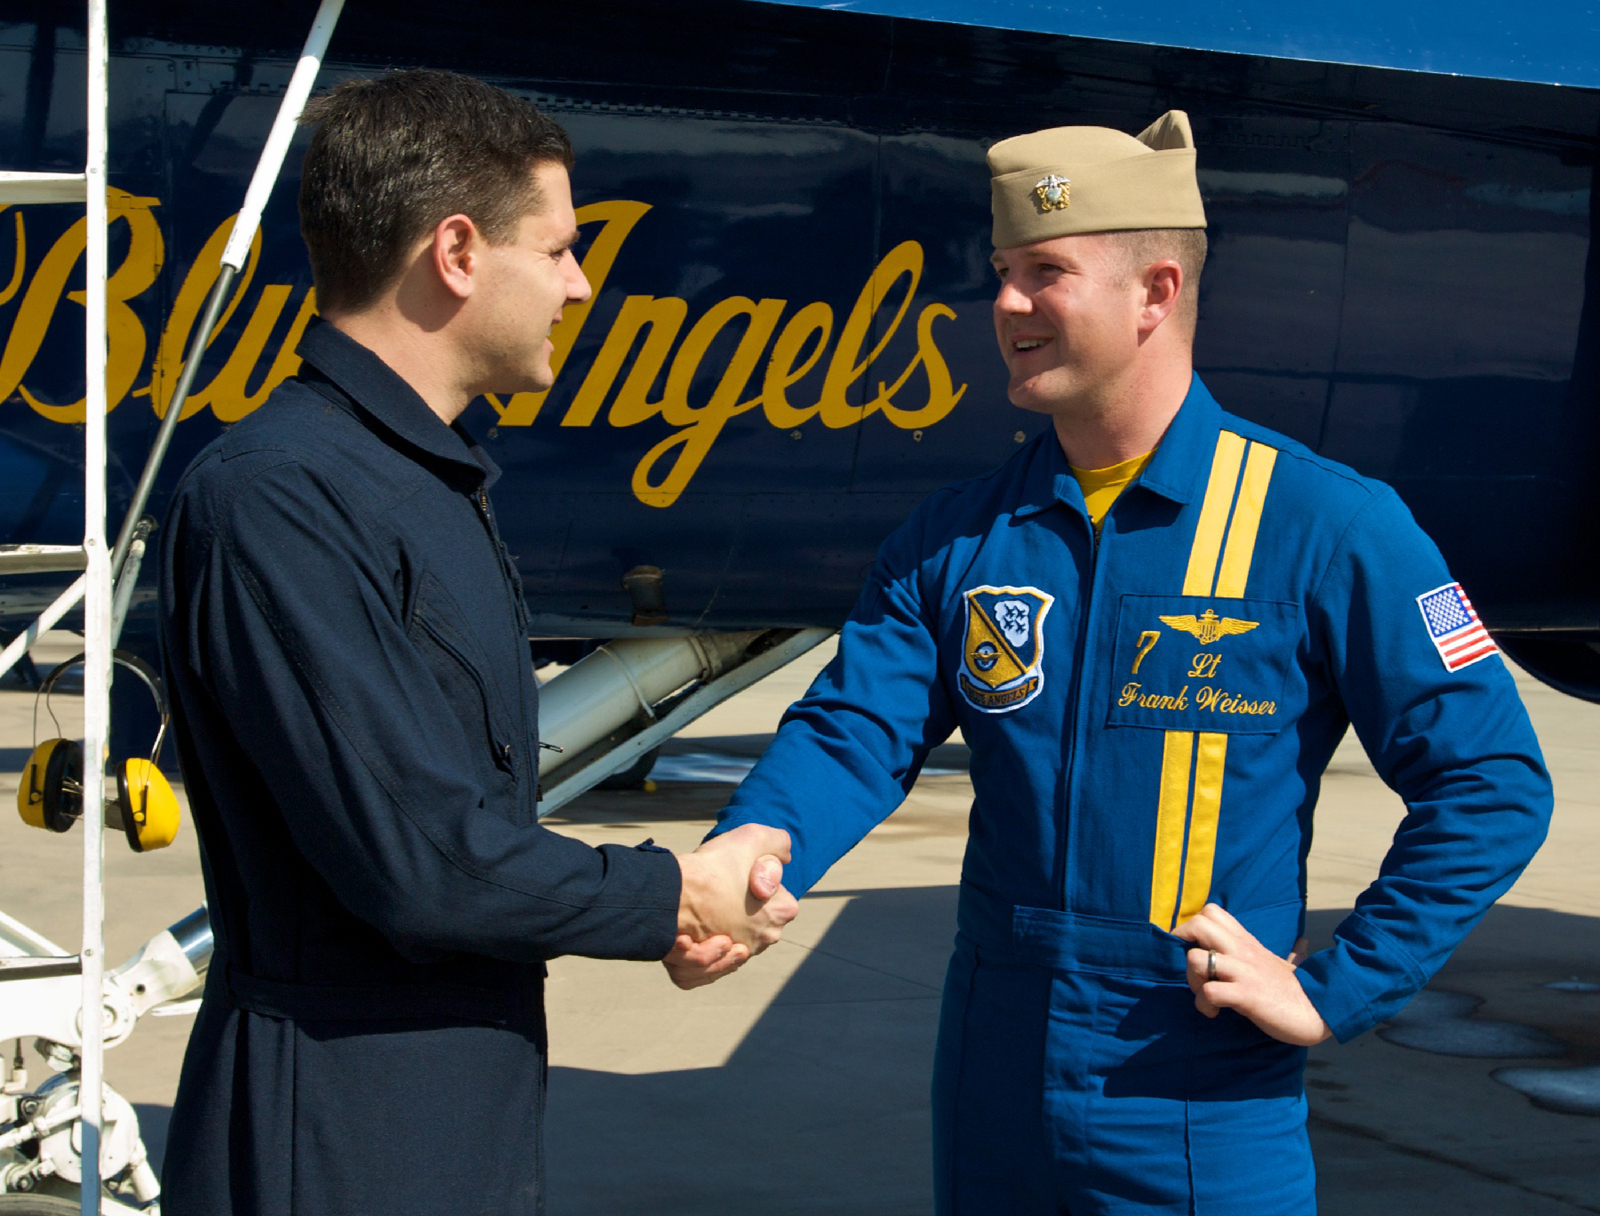 Flying VIP with the Blue Angels